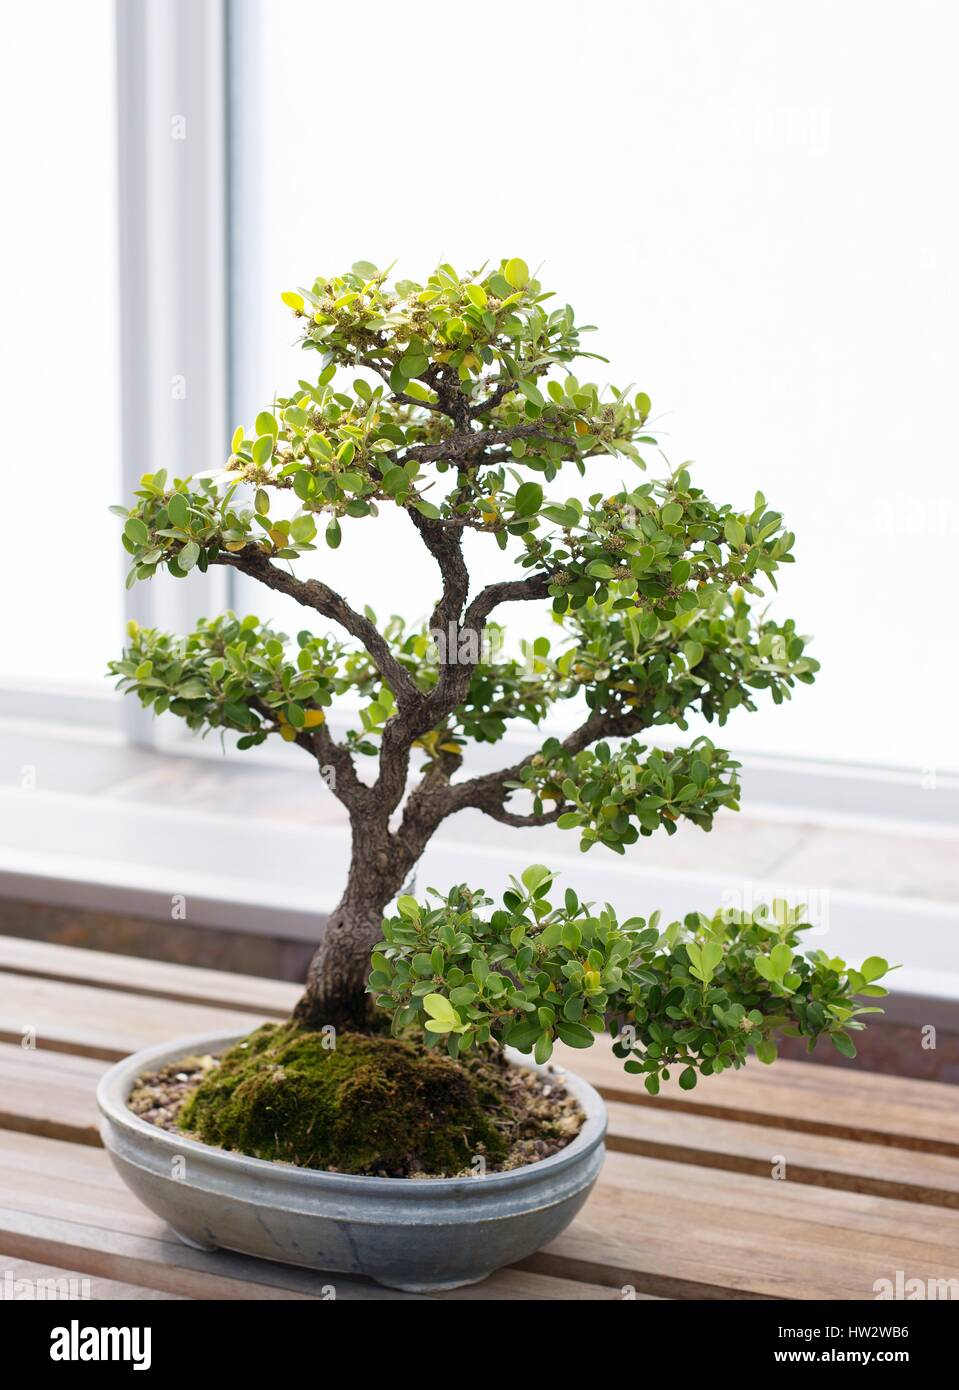 boxwood bonsai stockfotos boxwood bonsai bilder alamy. Black Bedroom Furniture Sets. Home Design Ideas